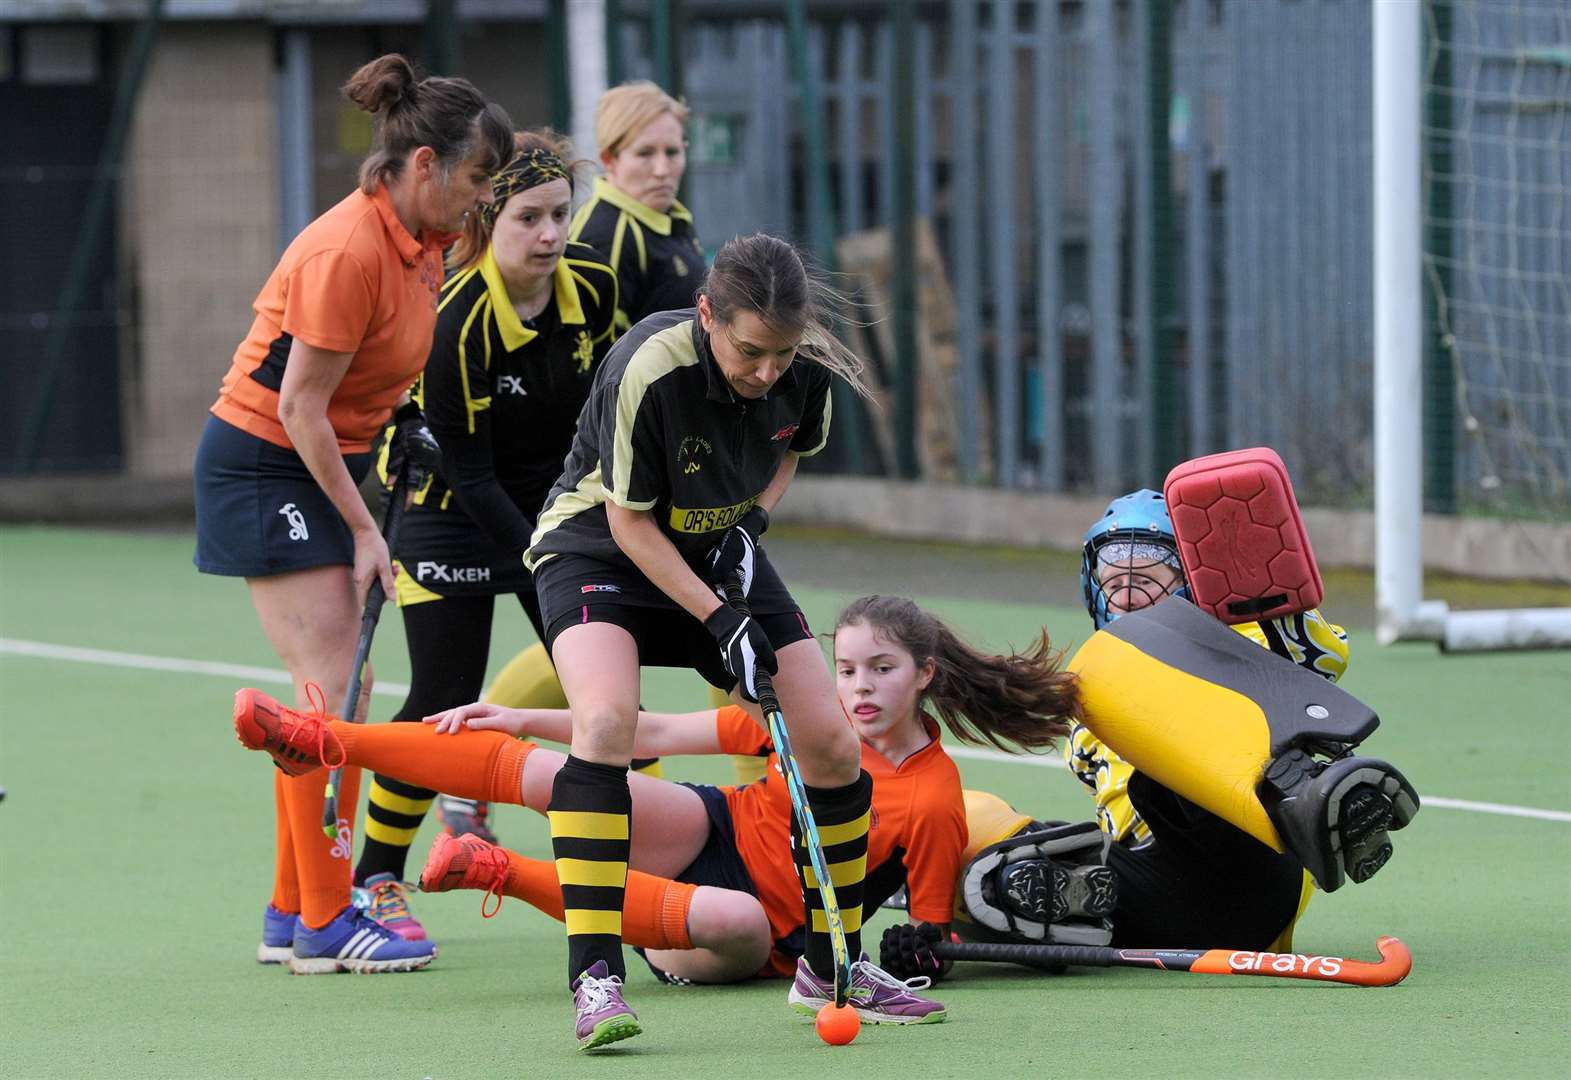 Hockey club prepared for new season after reprieve